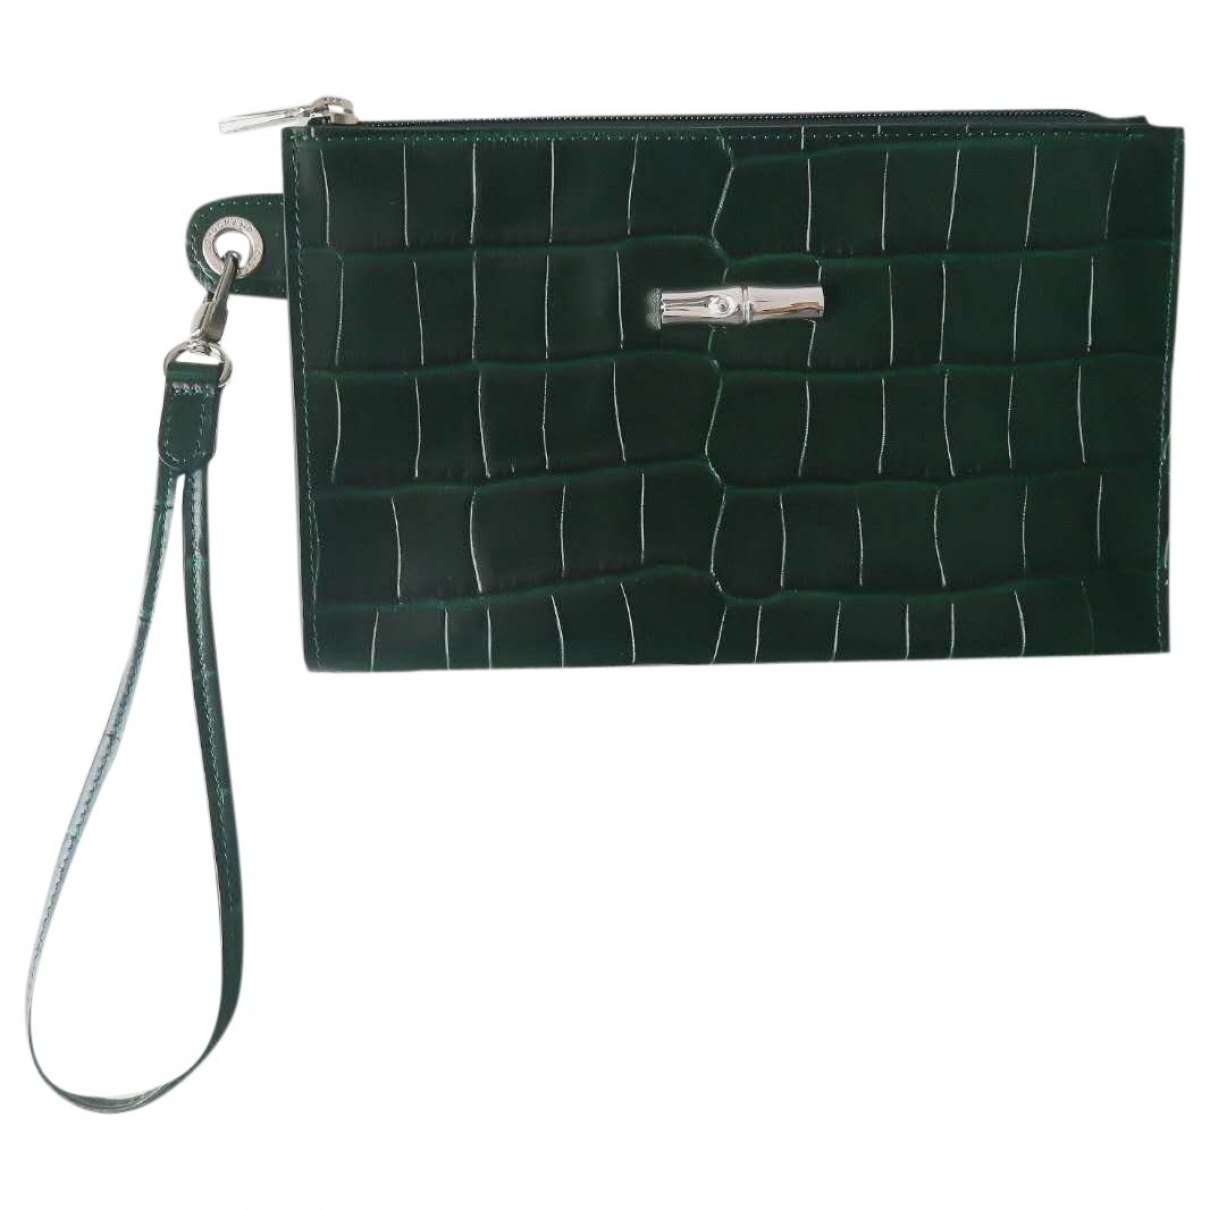 Longchamp Pliage  Green Leather Clutch bag for Women \N